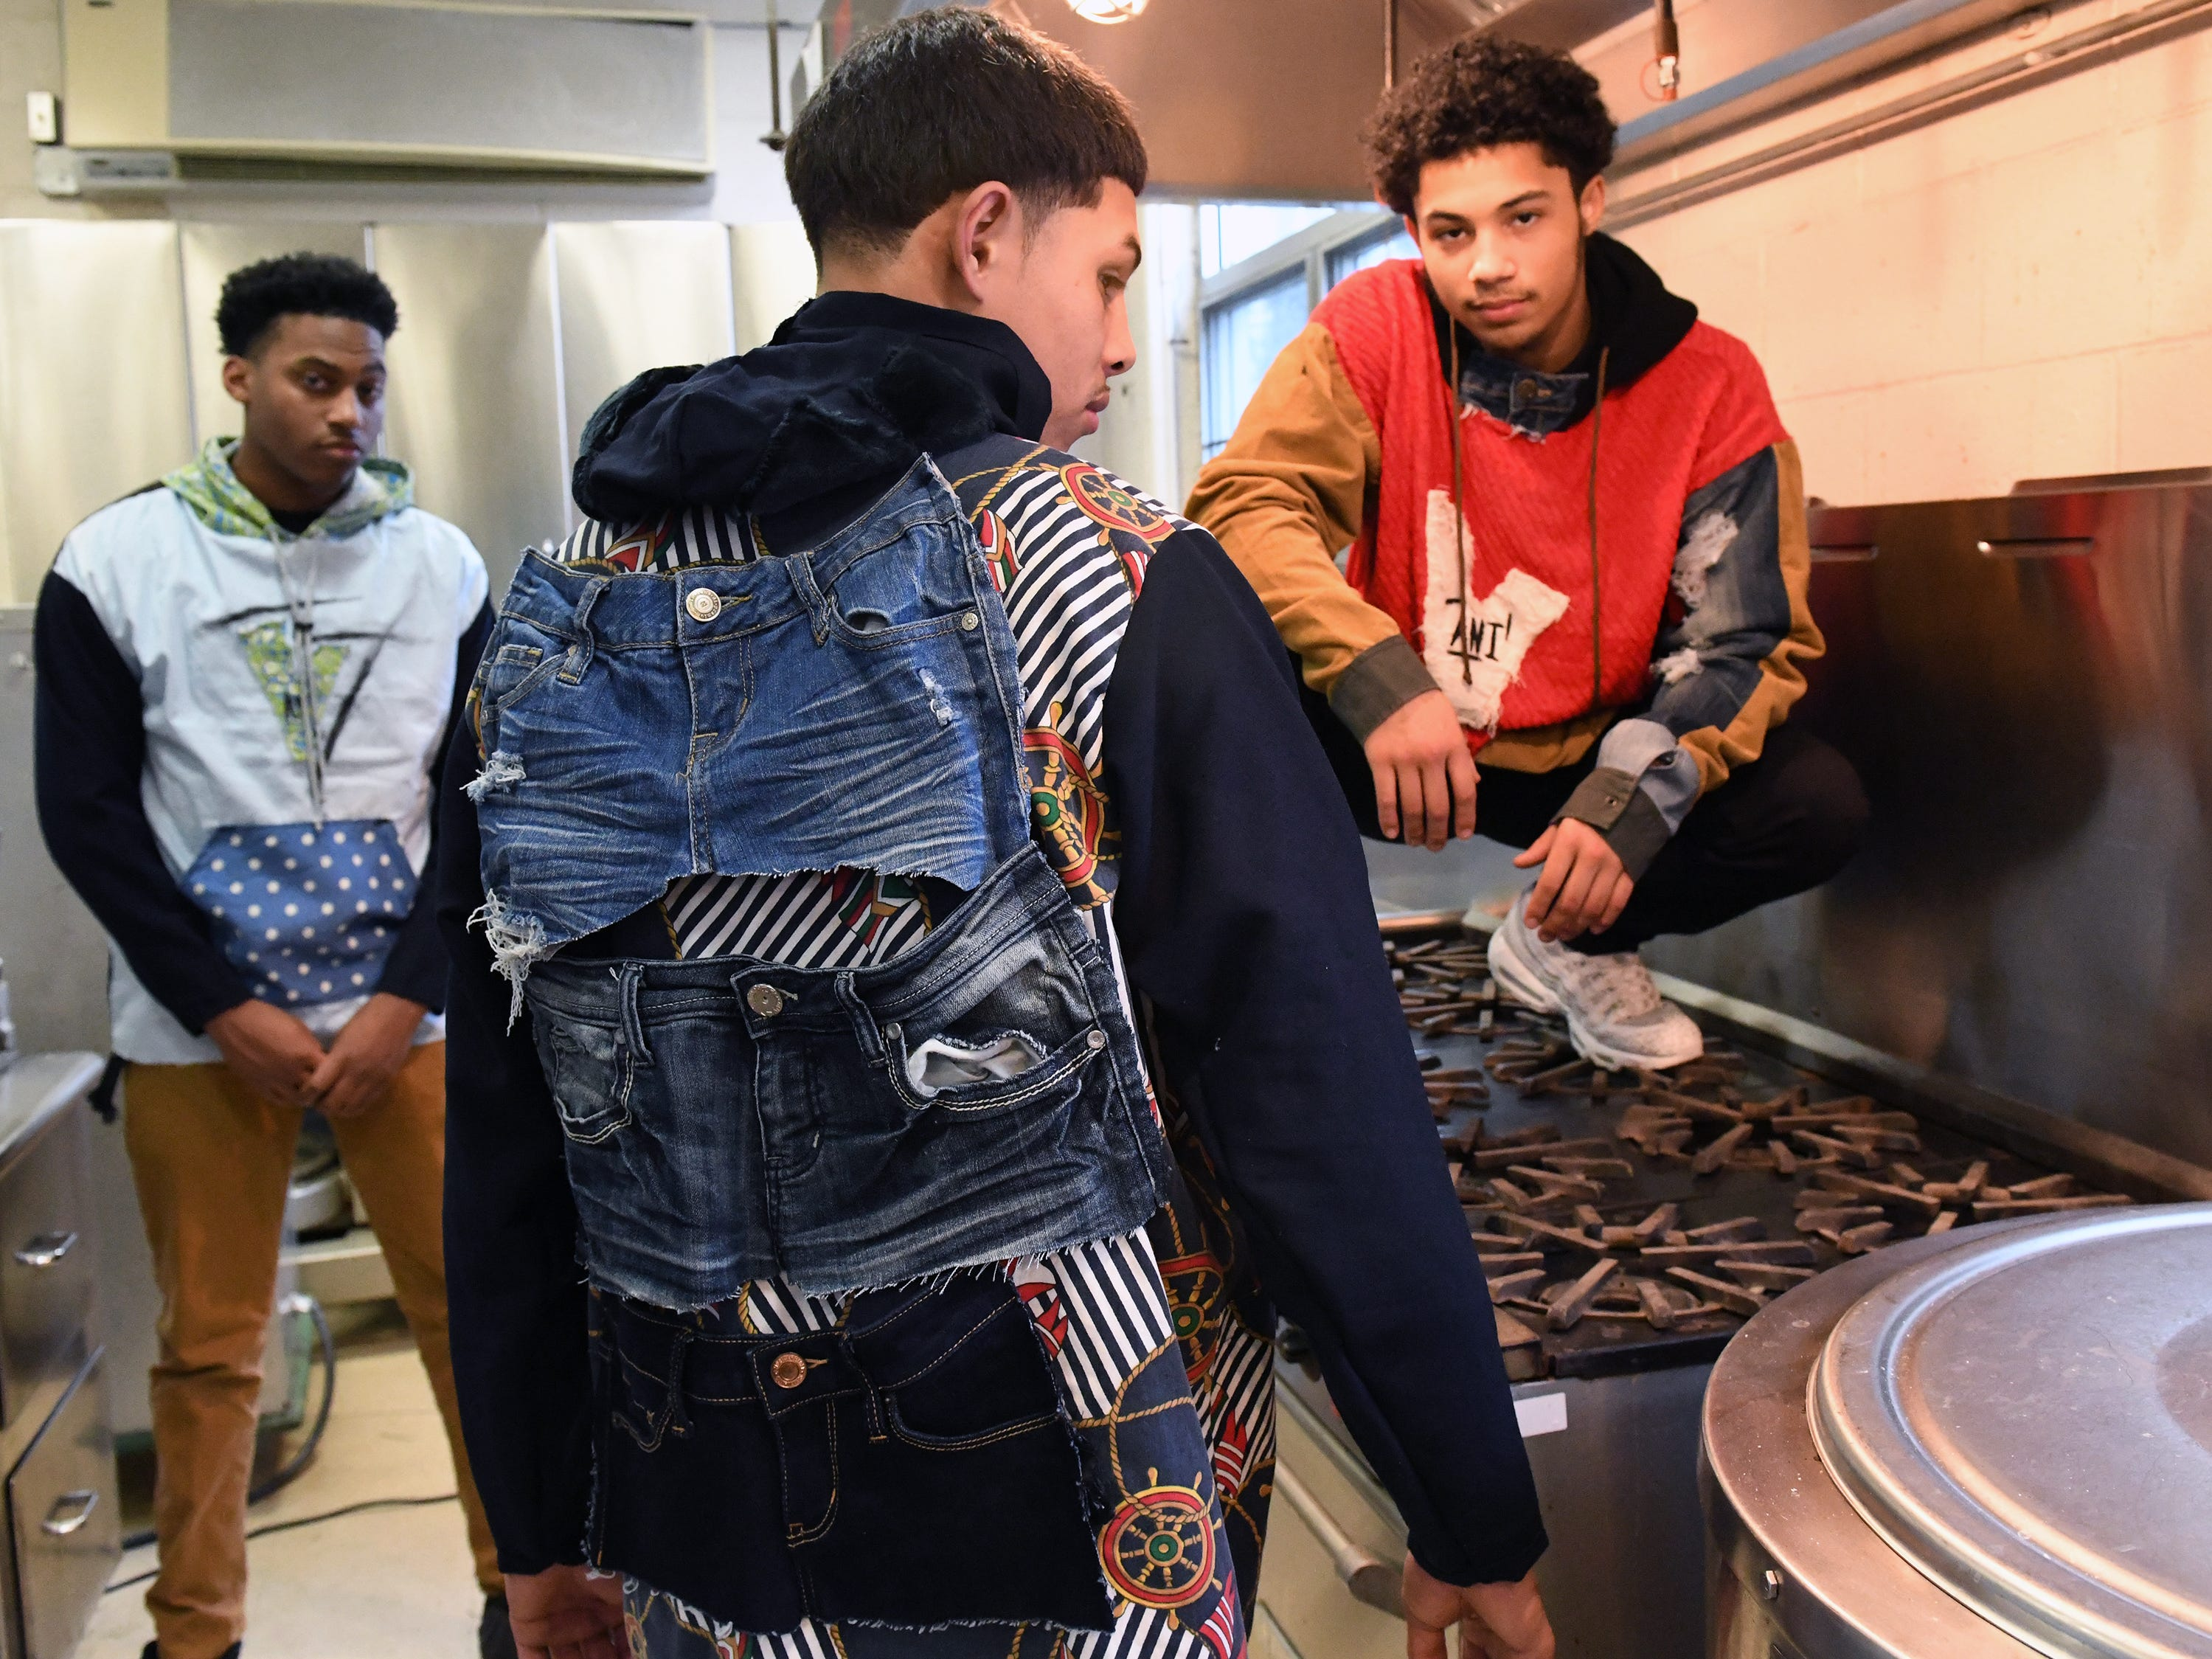 Fabricio Lobo (center) shows off some of his fashion line with the help from friends Cameron Purnell (left) and Zae Bogan at Cunningham Academy in Vineland on Thursday, Jan. 24, 2019